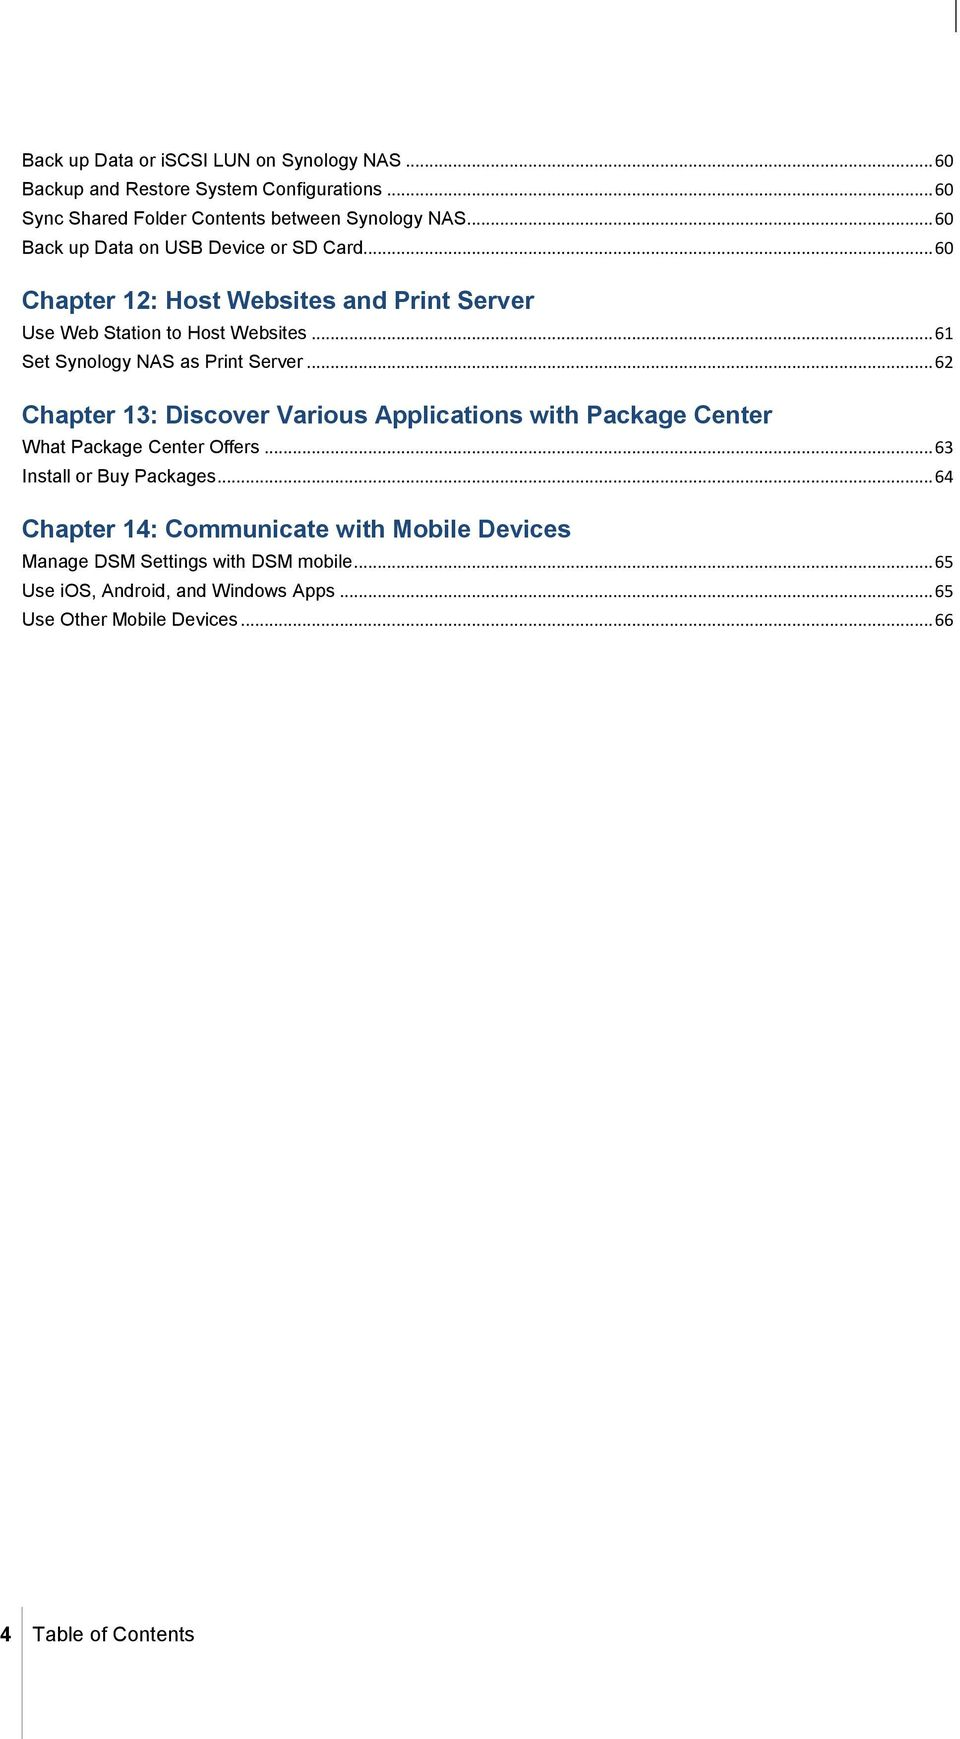 .. 61 Set Synology NAS as Print Server... 62 Chapter 13: Discover Various Applications with Package Center What Package Center Offers.